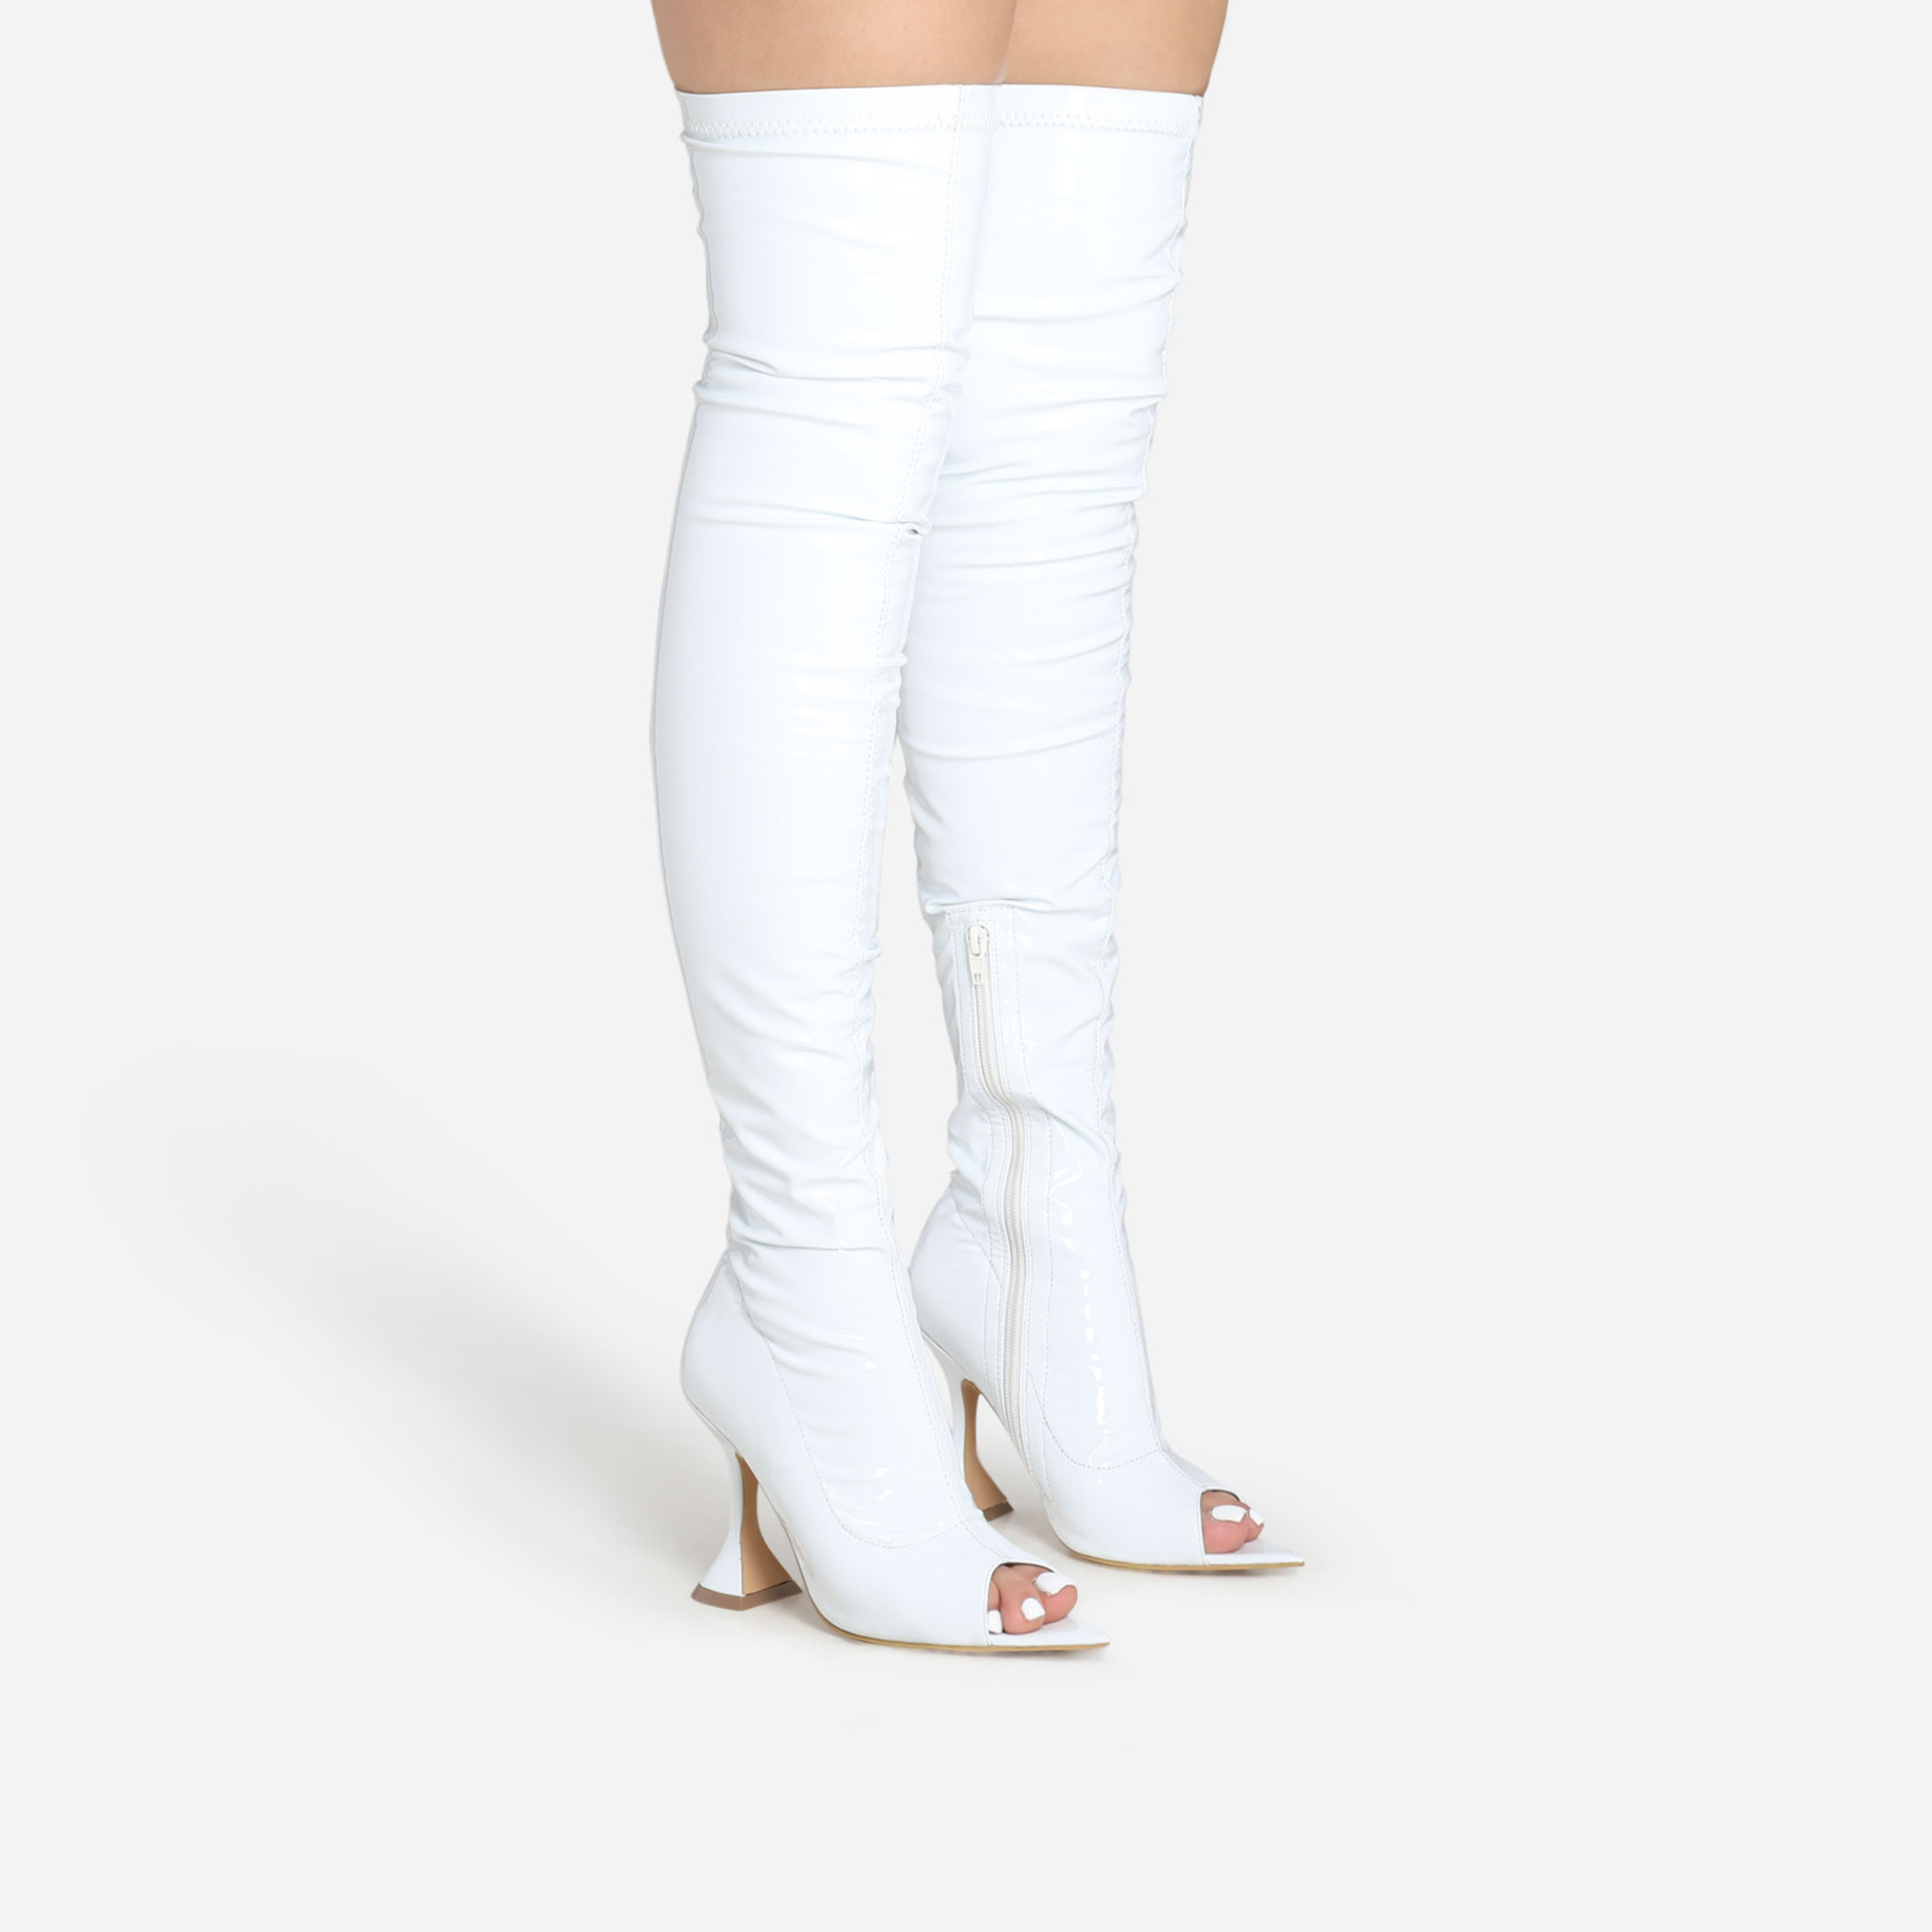 Jump Pyramid Heel Peep Toe Over The Knee Thigh High Long Boot In White Patent